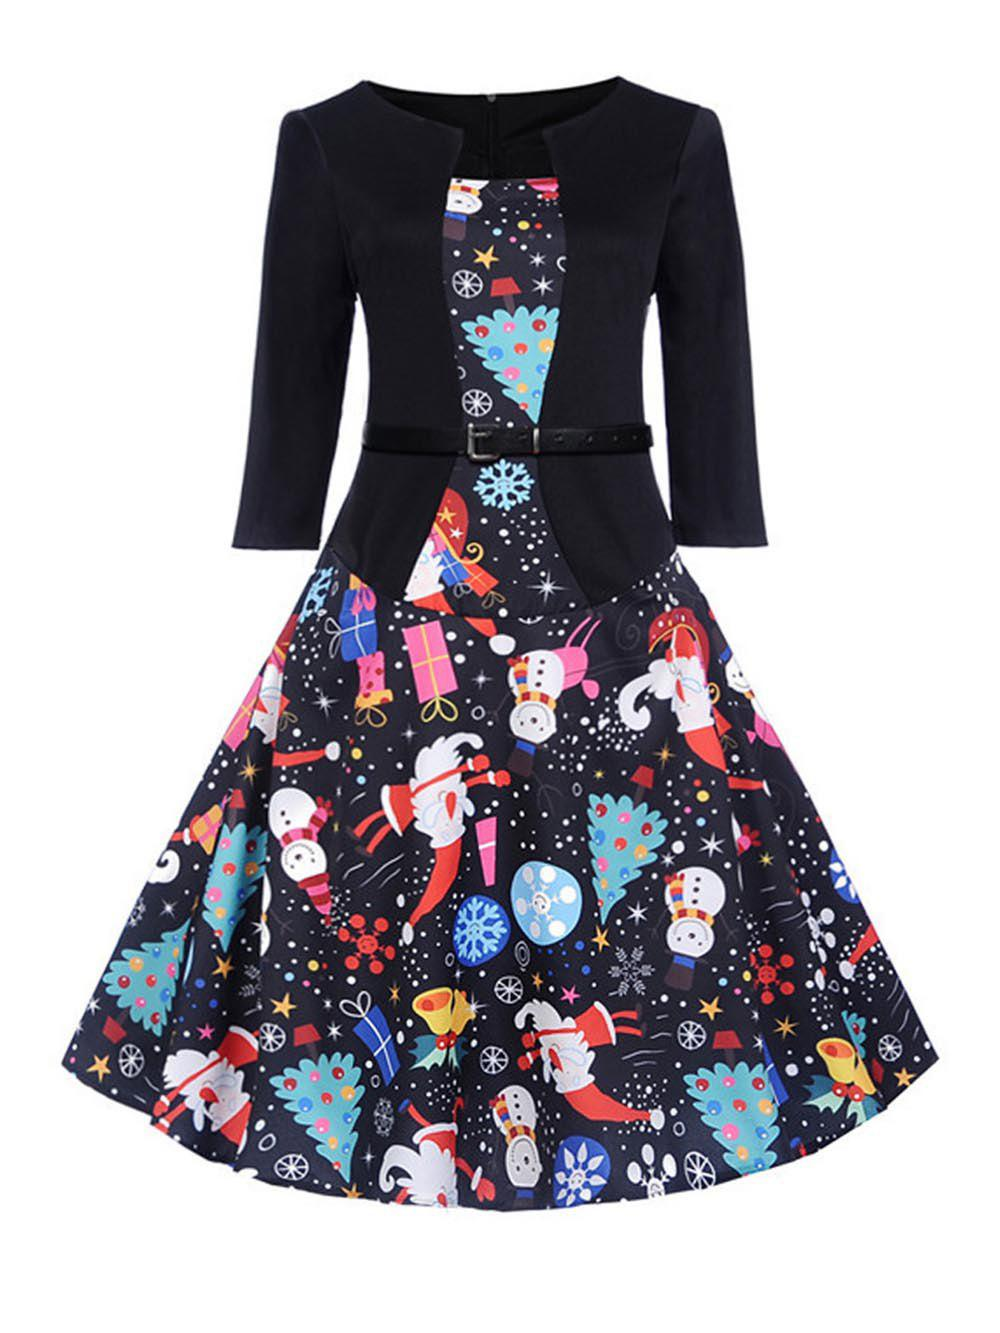 Fashion Hepburn Vintage Series Women Dress Spring And Summer Round Neck Christmas Printing Design 3/4 Sleeve Belt Corset Dress